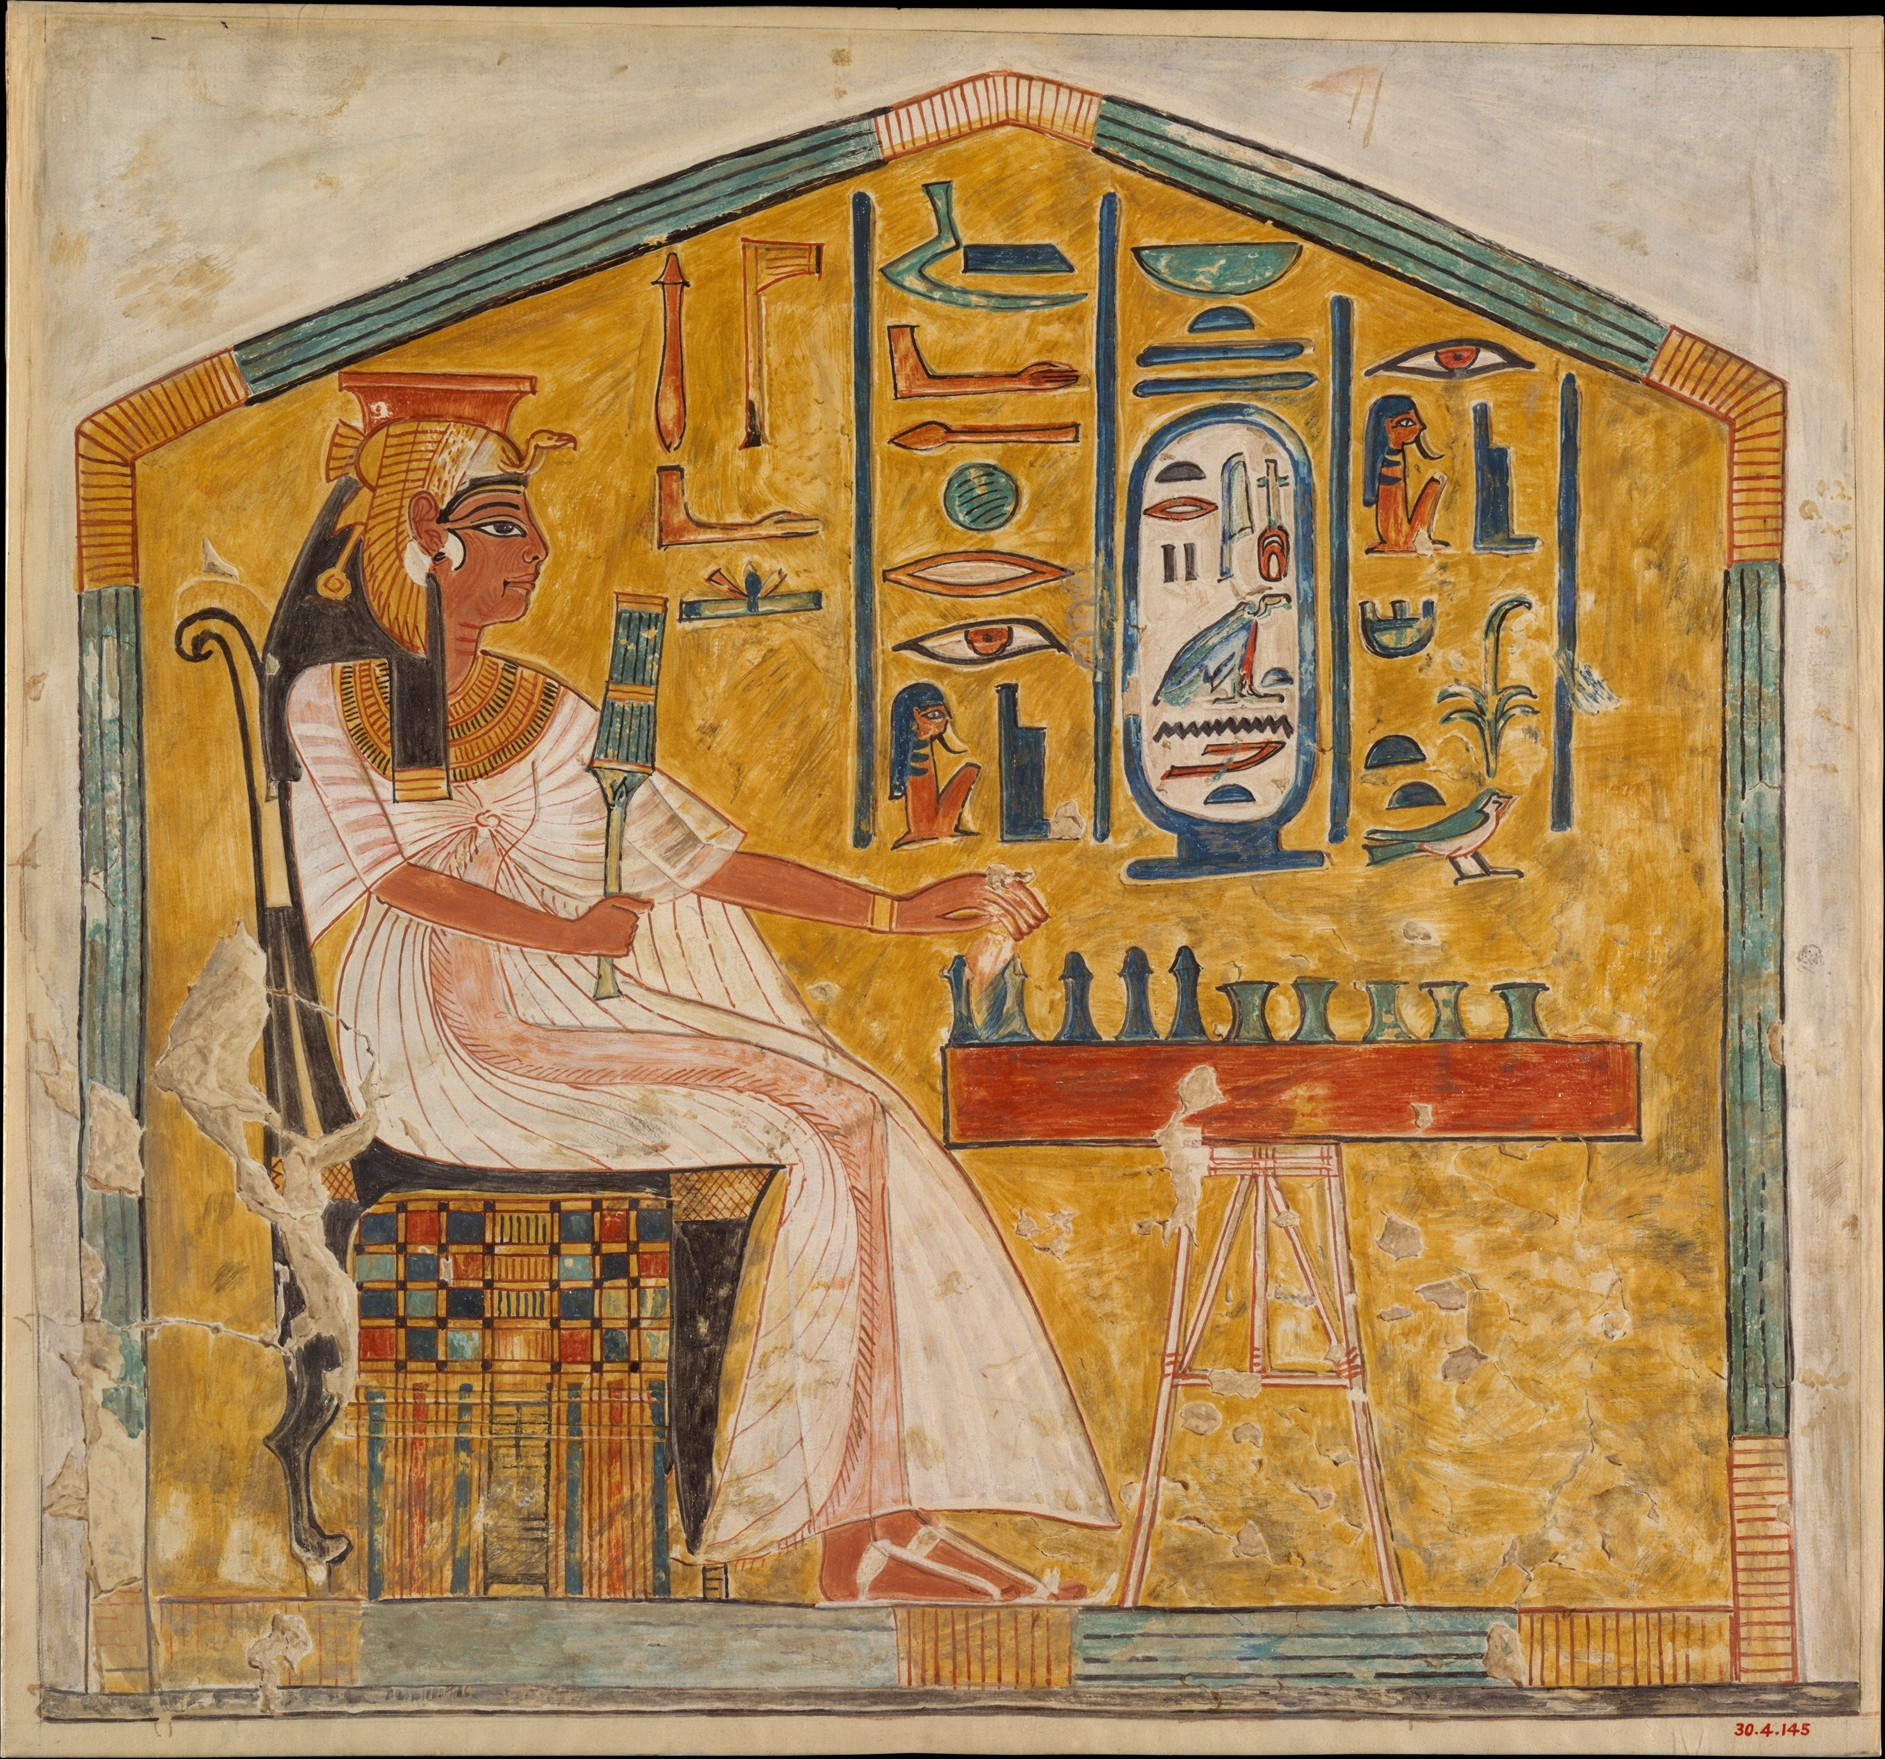 A queen plays a favorite board game, Senet, in a scene from her tomb. The ancients were big into board games.   Courtesy of the Metropolitan Museum of Art